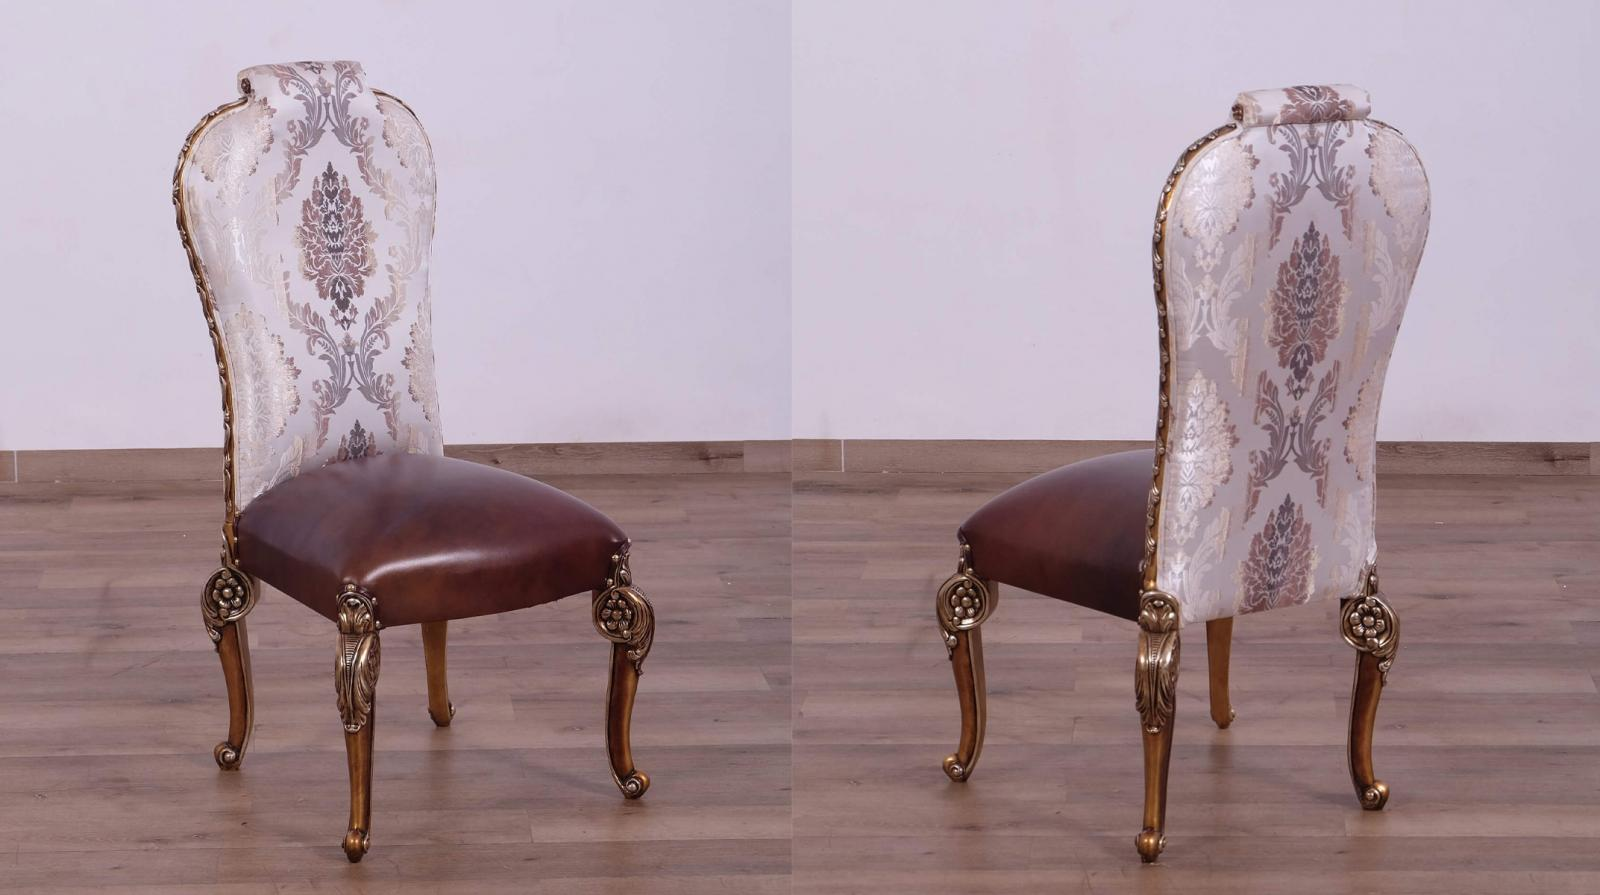 Contemporary, Modern Bronze, Gold, Pearl Leather and Fabric, Wood, Solid Hardwood Dining Chair Set 2 pcs BELLAGIO by European Furniture